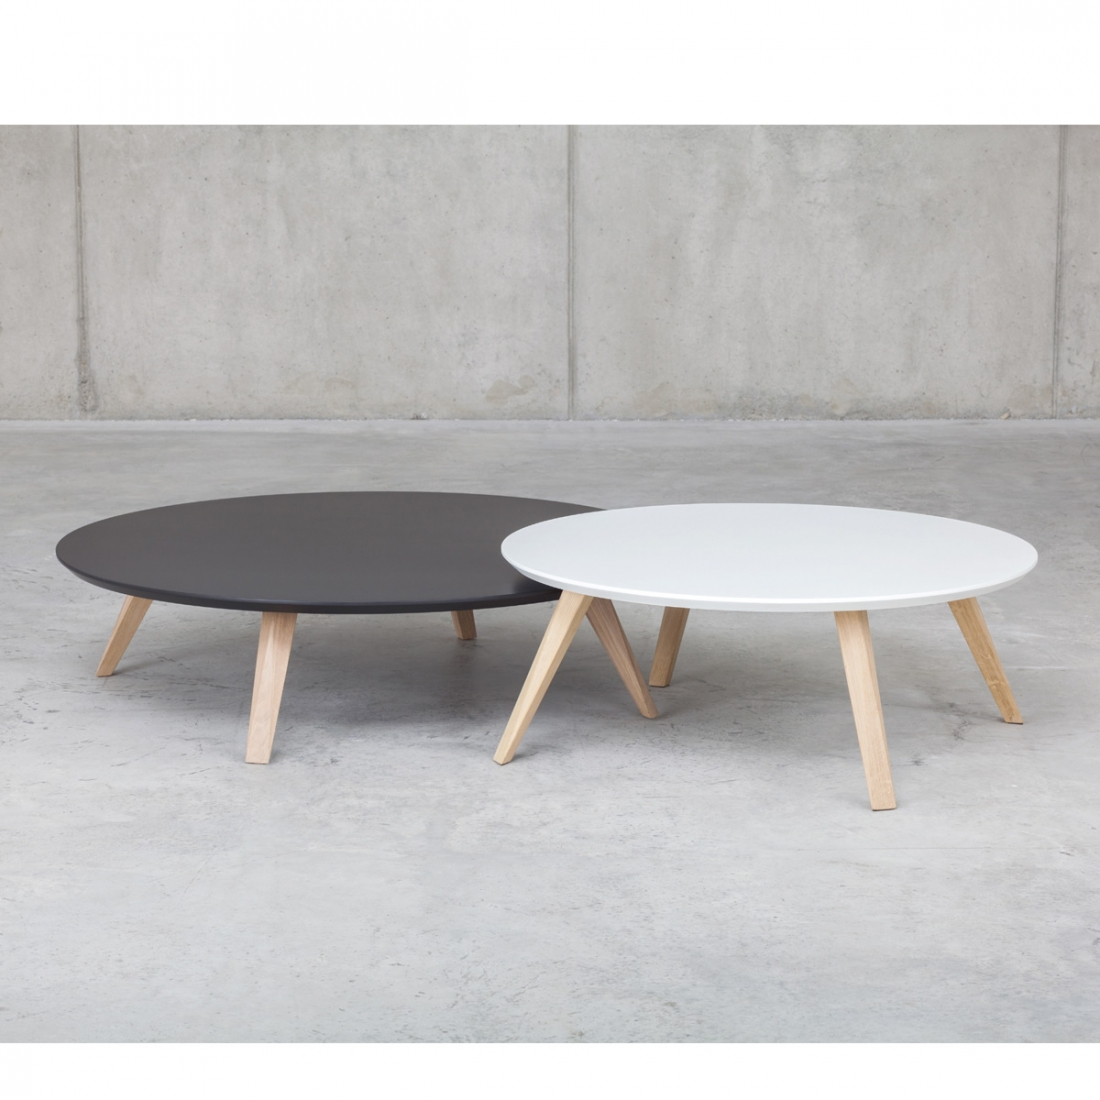 Table basse en bois prostoria zendart design - Table basse scandinave gigogne ...